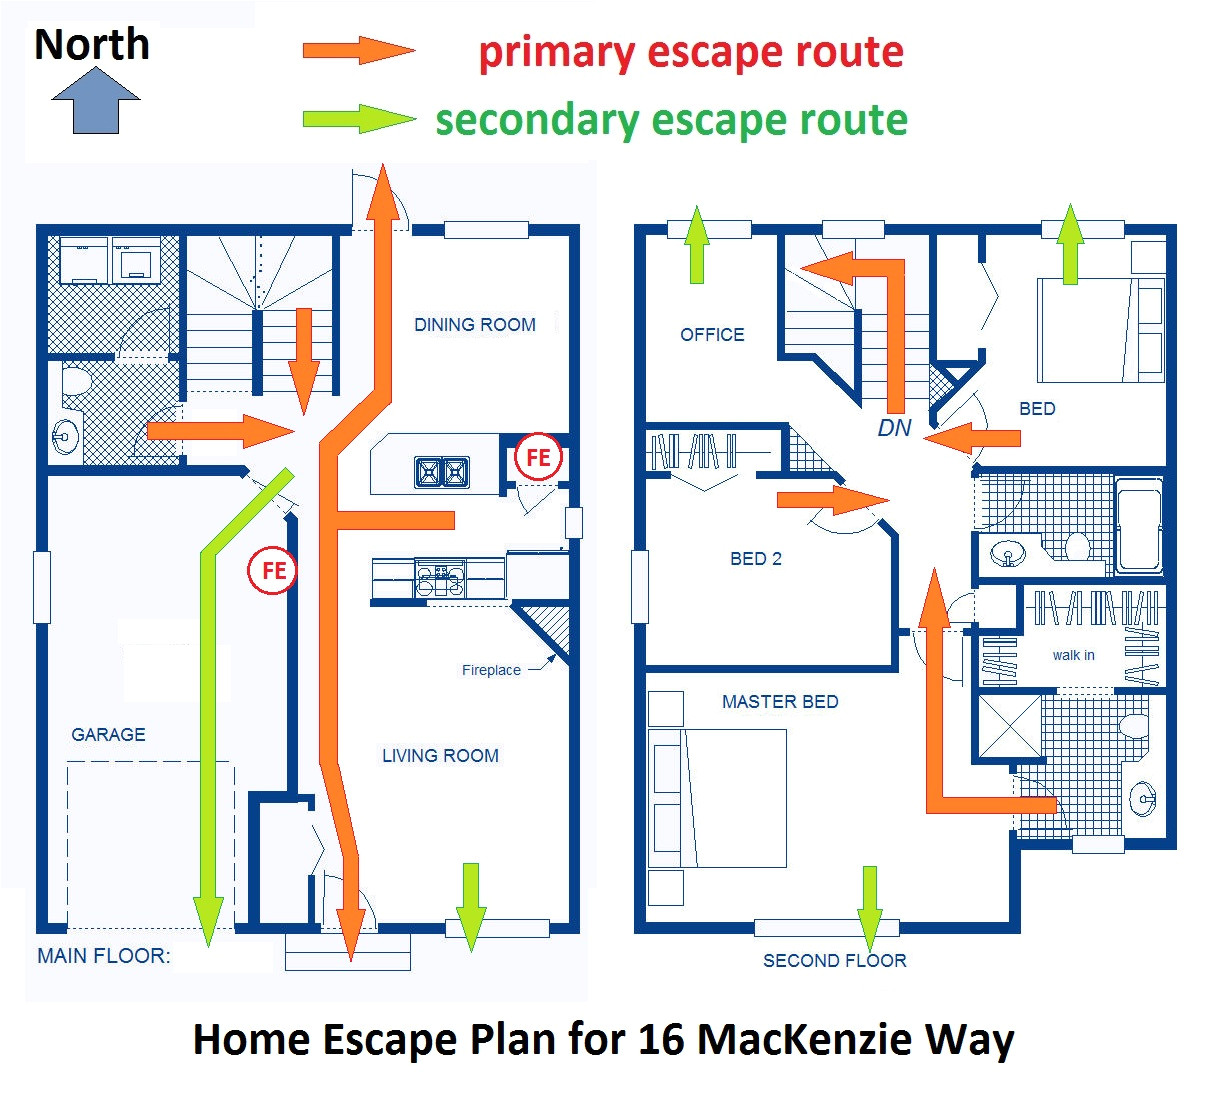 planning a fire evacuation route for your home